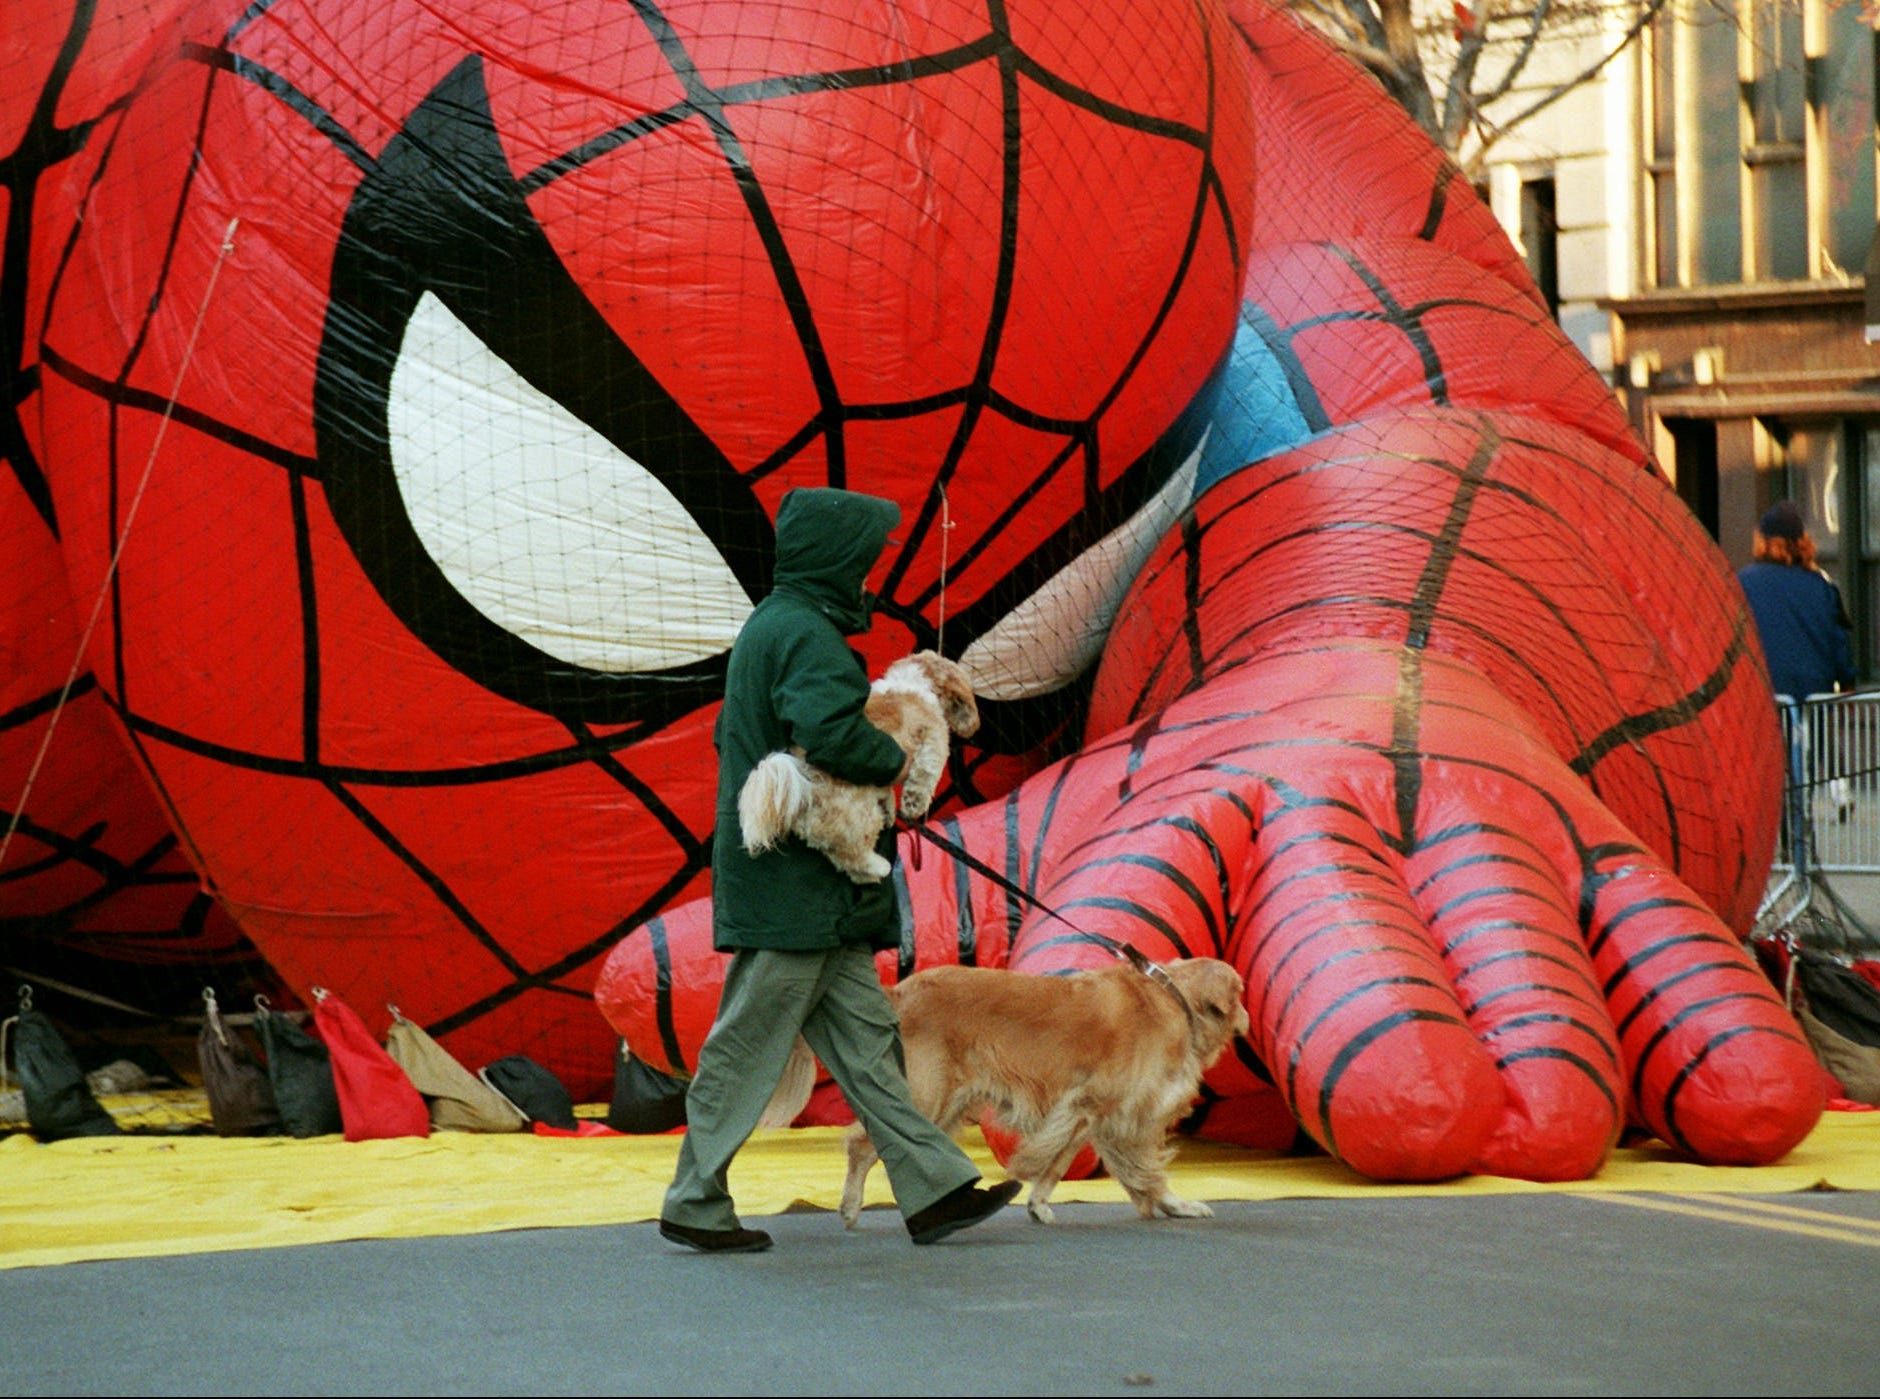 -  -Spider-Man, Macy's Thanksgiving Day Parade official Super Hero balloon, keeps a watchful eye on a pedestrian walking his dogs prior to the start of the parade,Thursday, Nov. 27, 1997 in New York. Wind gusts of 40 mph were reported in the area as the parade, famous for its huge helium balloons of cartoon characters, got under way. (AP Photo/Emile Wamsteker)